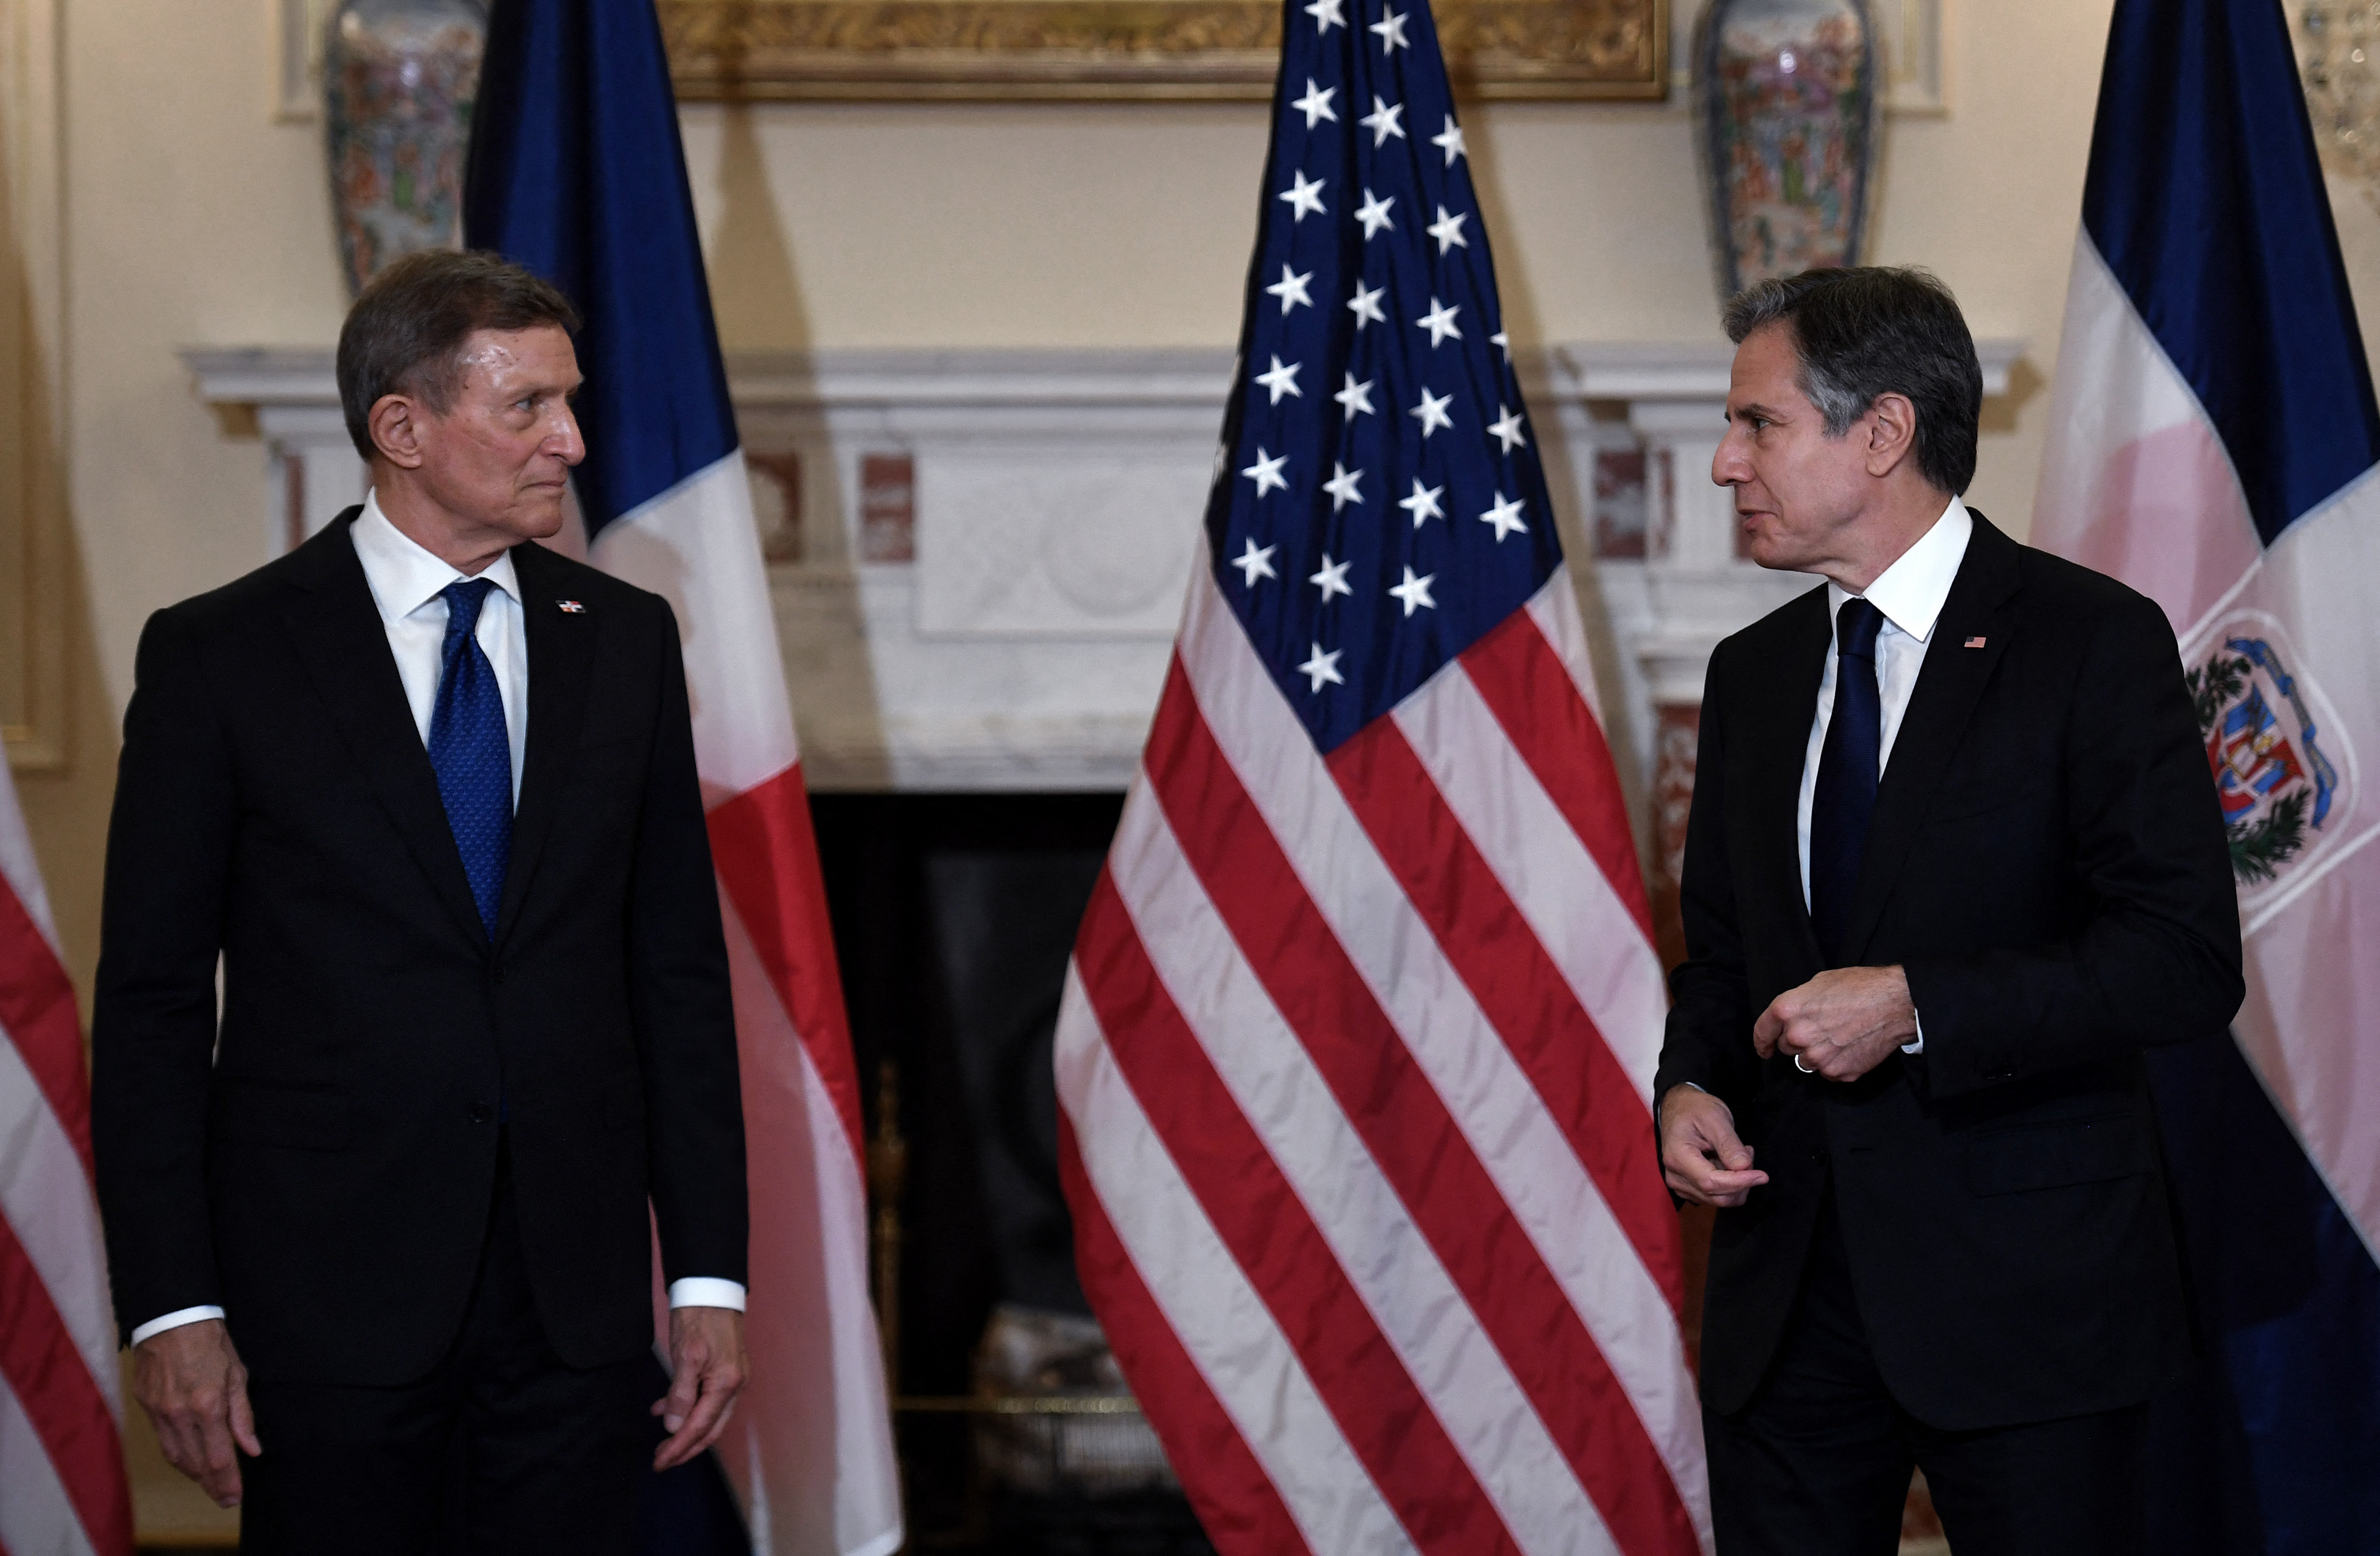 U.S. Secretary of State Antony Blinken (right) and Dominican Republic's Foreign Minister Roberto Alvarez speak to the press at the State Department in Washington, DC on September 28, 2021. (Photo by OLIVIER DOULIERY/POOL/AFP via Getty Images)